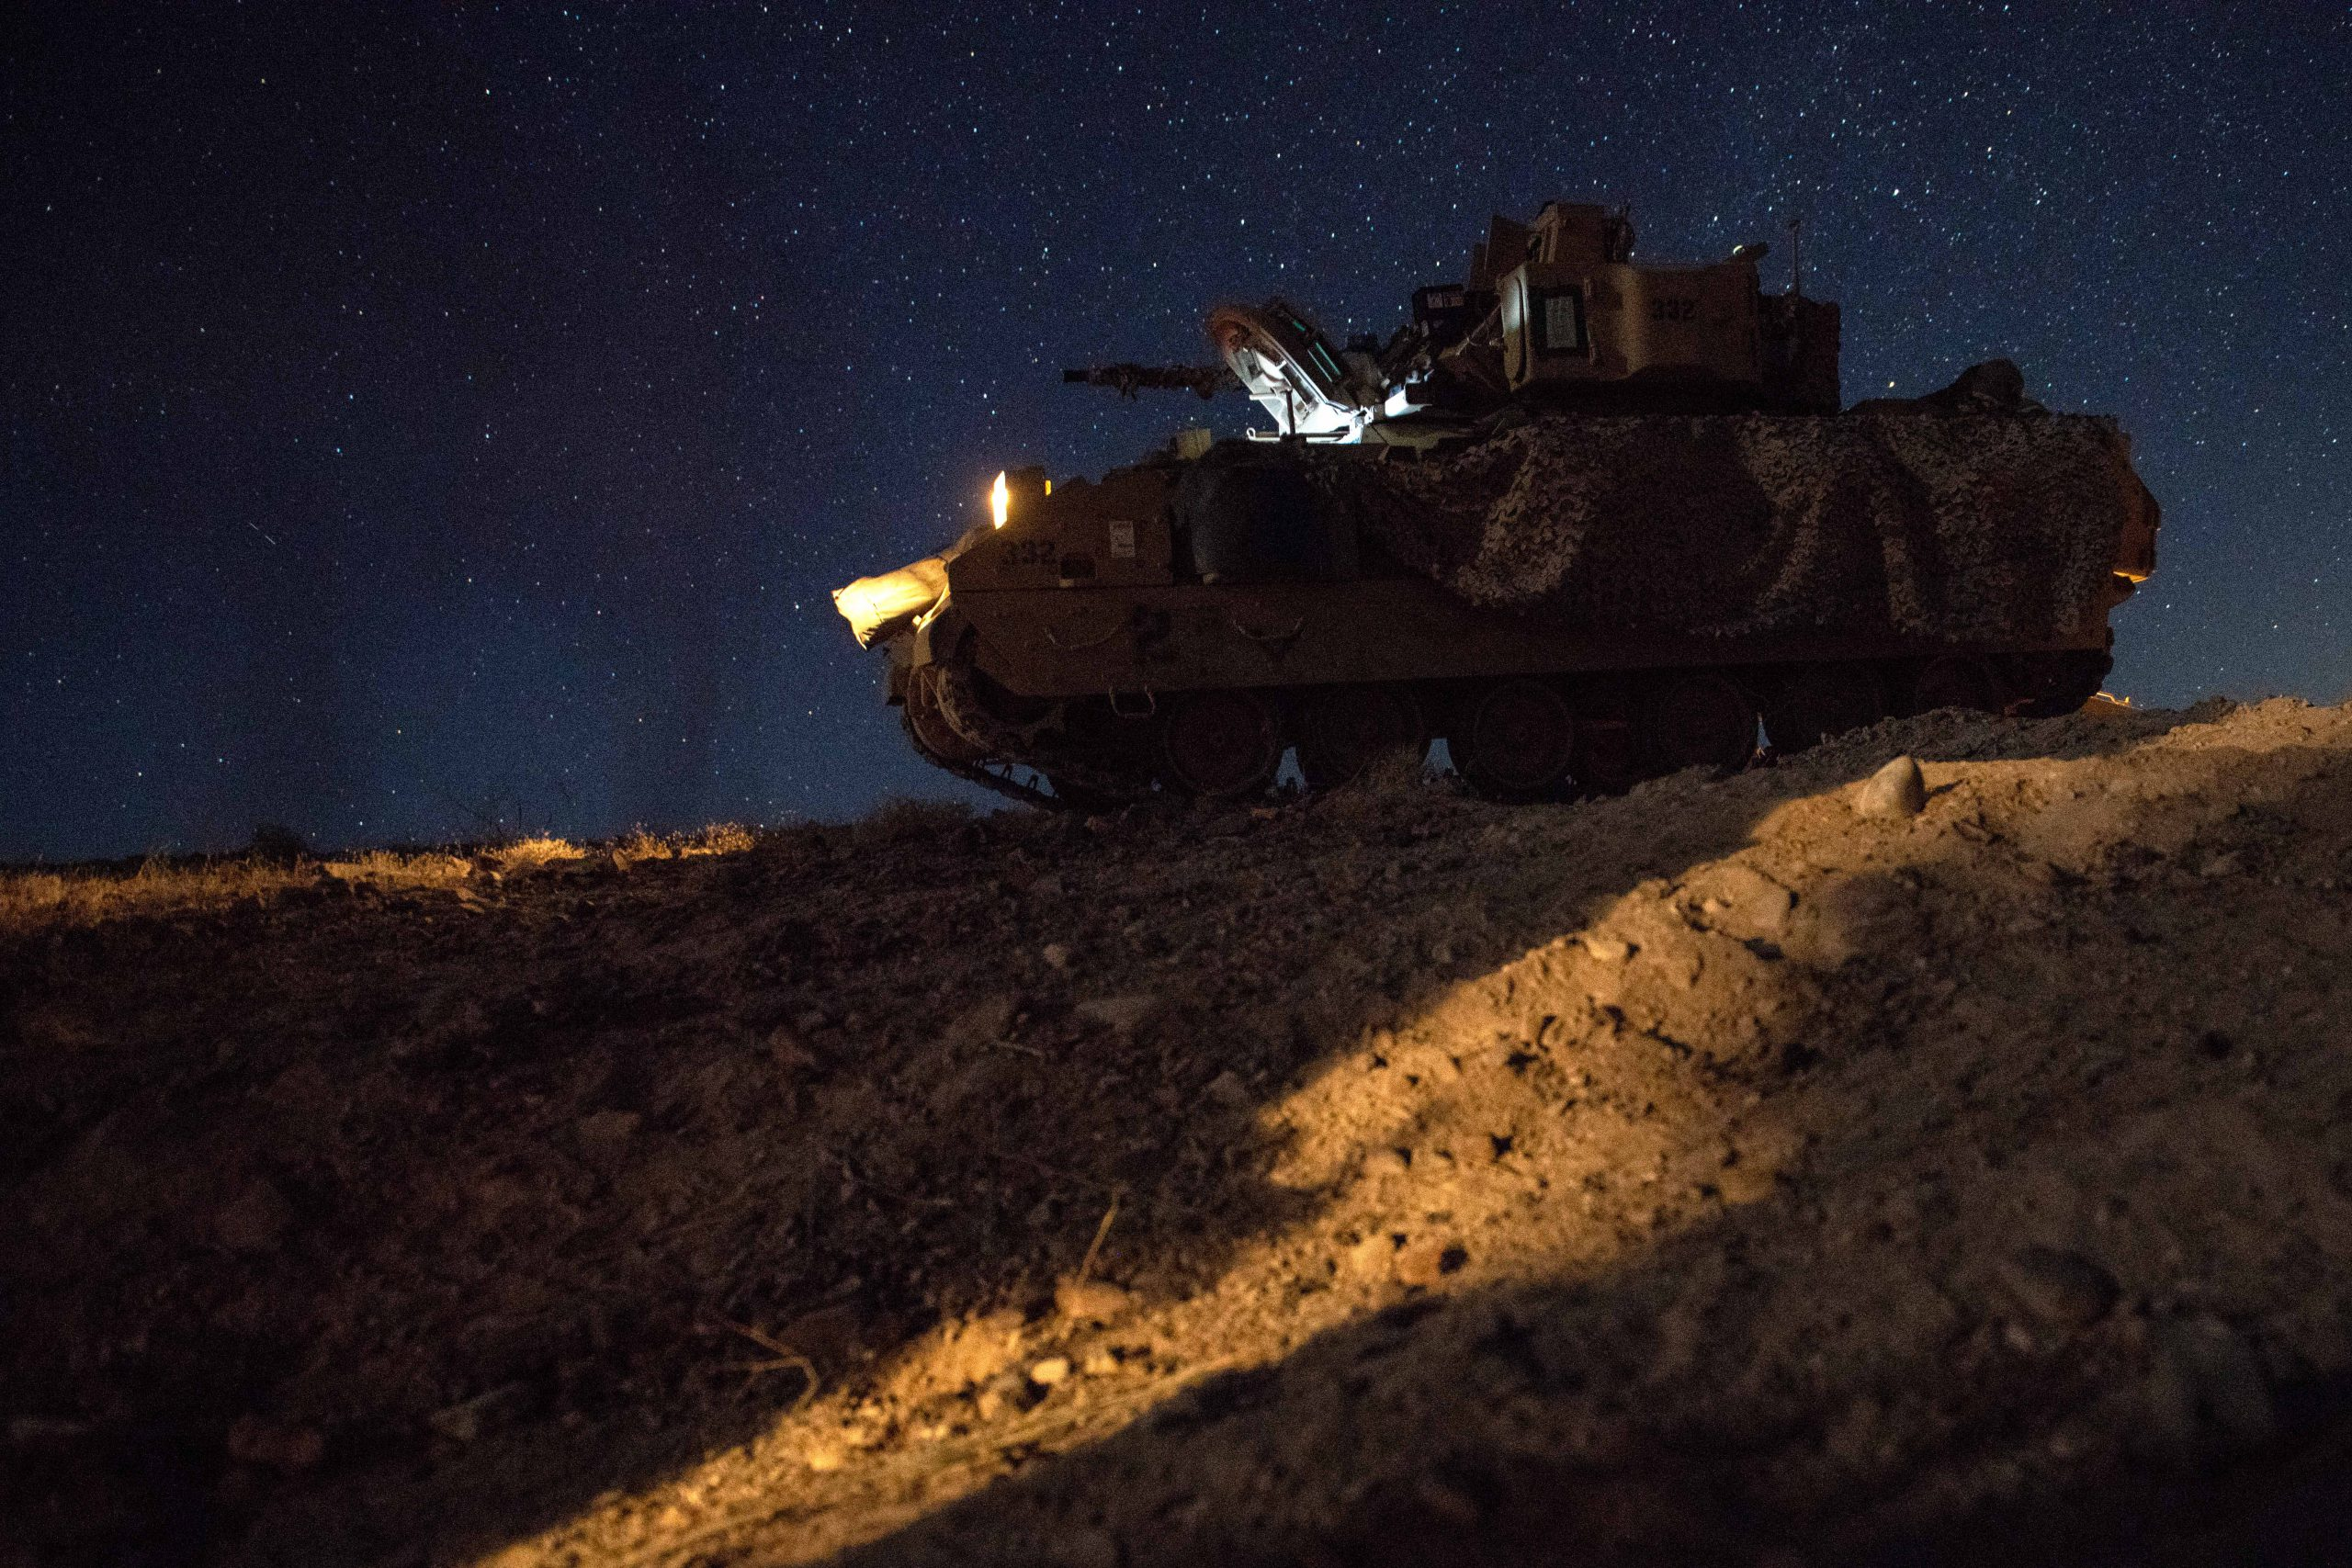 """Soldiers of the 1st Combined Arms Battalion, 194th Armor Regiment, wait to start an overnight mission to gain control of the occupied city of Razish during a decisive-action training exercise in the desert environment of the National Training Center, Fort Irwin, California, on July 24, 2020. Soldiers loaded into Bradley Fighting Vehicles early in the morning to reach their objective before sunrise in an effort to surprise the opposing force known as Blackhorse. Blackhorse Soldiers of the 11th Armored Cavalry Regiment-Blackhorse, are dedicated to testing units in """"The Box.""""<br /><br /><br /><br />Brigade Soldiers are taking part in one of the U.S. Army's most challenging land force training exercises and have prepared for entering """"The Box"""" for over a year, including during their 2019 annual training at Fort Hood, Texas, where they completed an eXportable Combat Training Center exercise.<br /><br /><br /><br />The 1st Combined Arms Battalion, 194th Armor Regiment, is a Minnesota Army National Guard battalion headquartered in Brainerd. The overall unit mission is to provide heavy armor and mechanized infantry ground combat power to the 1st Armored Brigade Combat Team, 34th Infantry Division. (U.S. Army photo by Sgt. Sebastian Nemec)"""